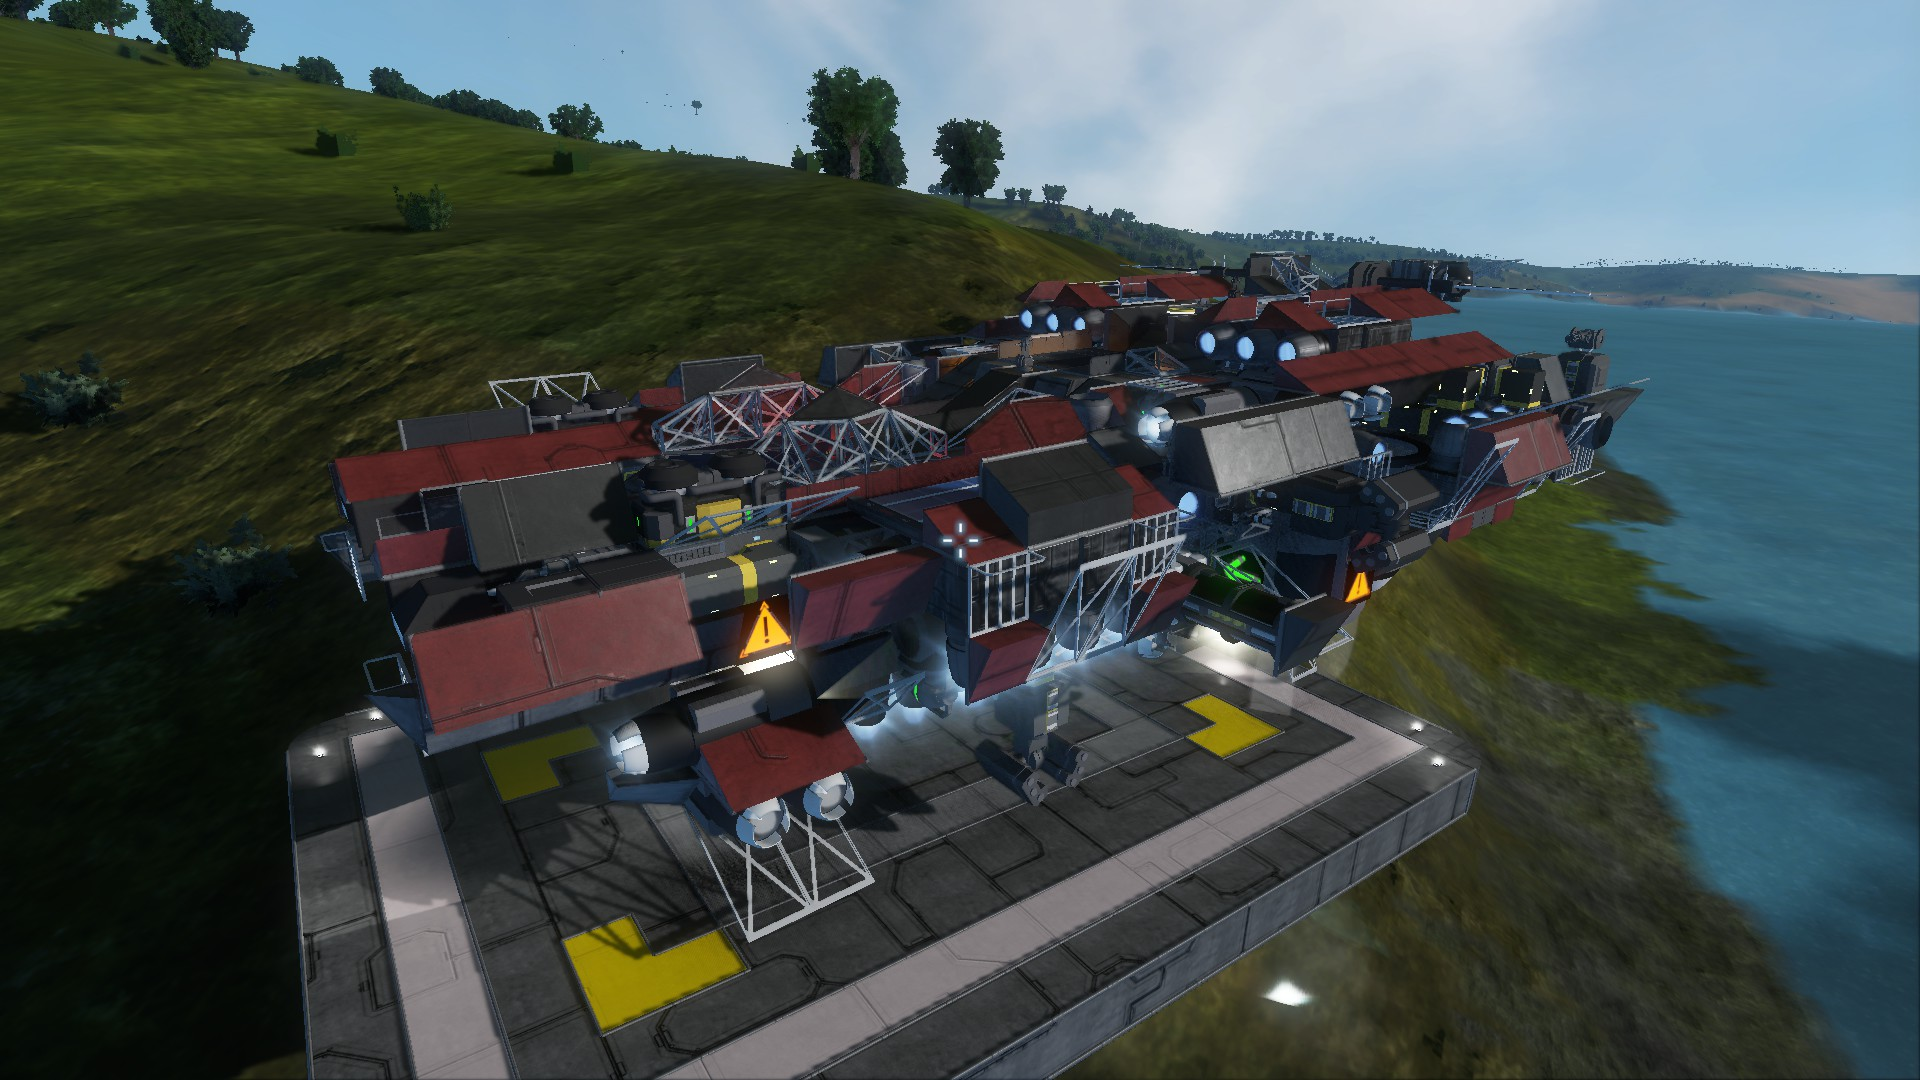 Show off your creations page 119 keen software house forums - Small reactor space engineers gallery ...